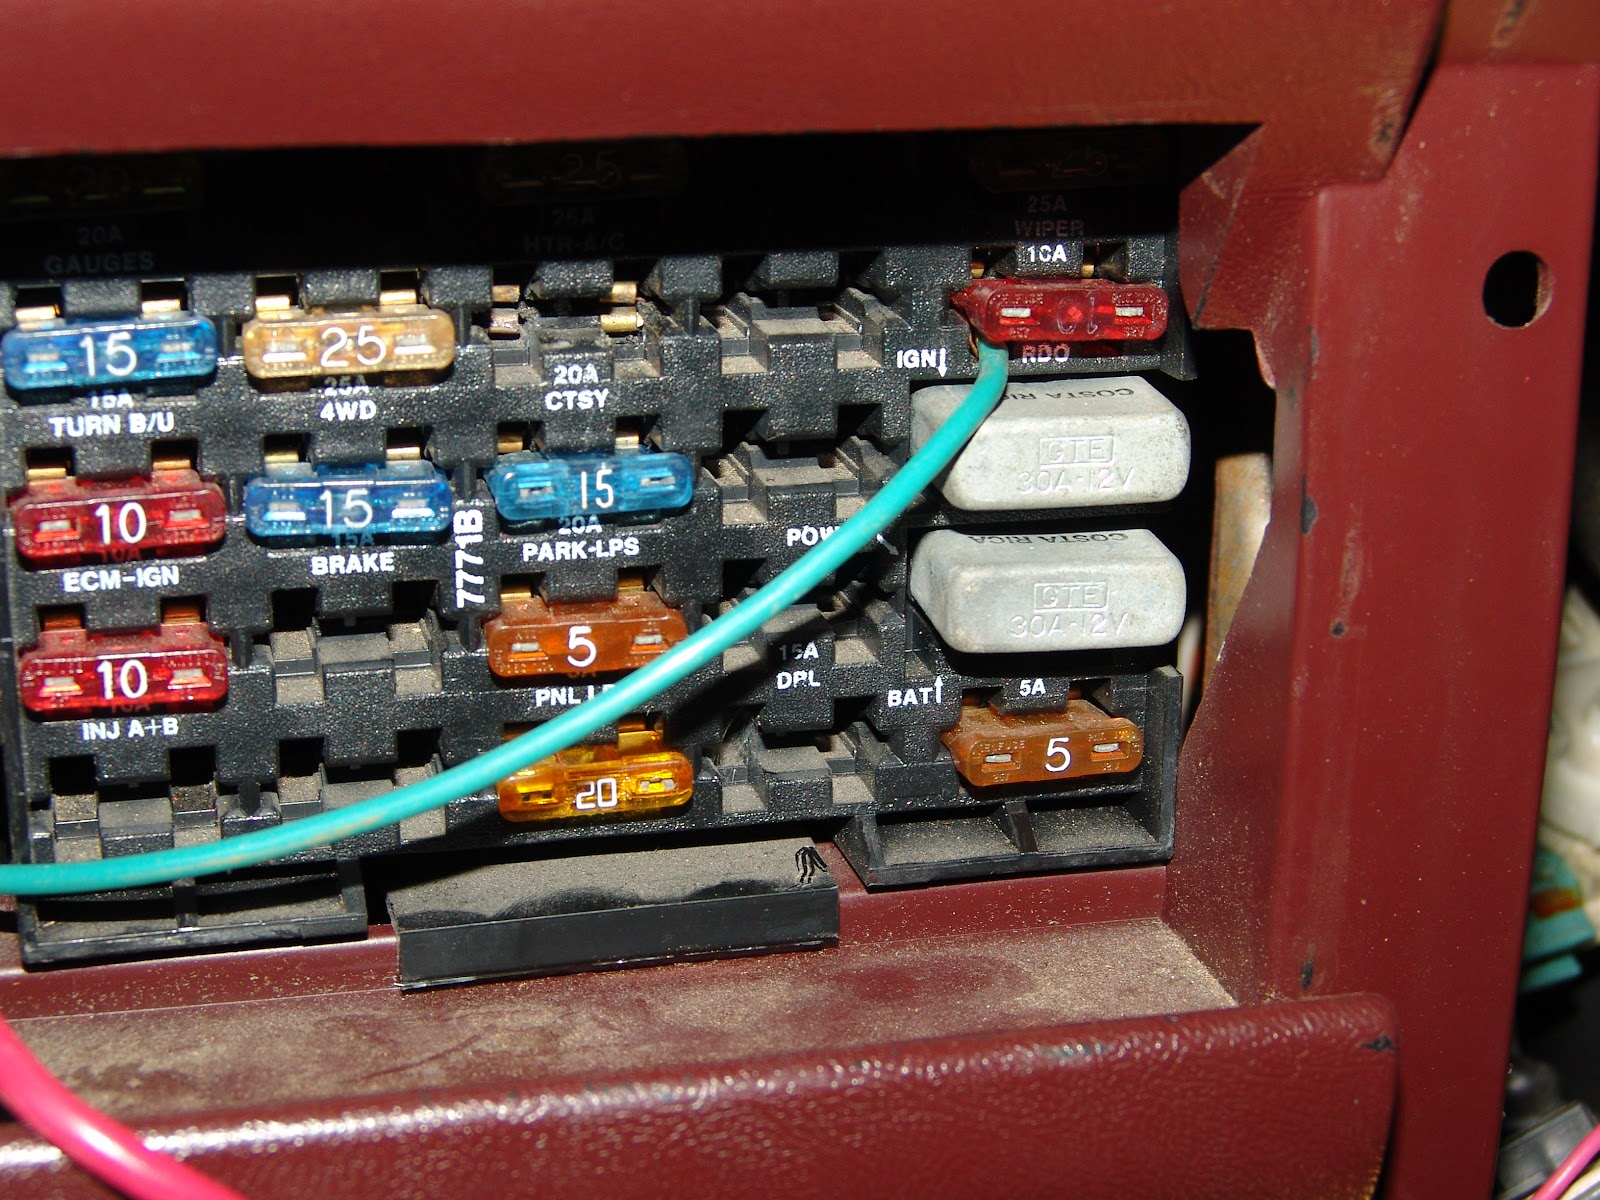 1988 GMC Fuse Box http://www.sparkys-answers.com/2011/08/1990-chevrolet-k1500-pickup-multiple.html